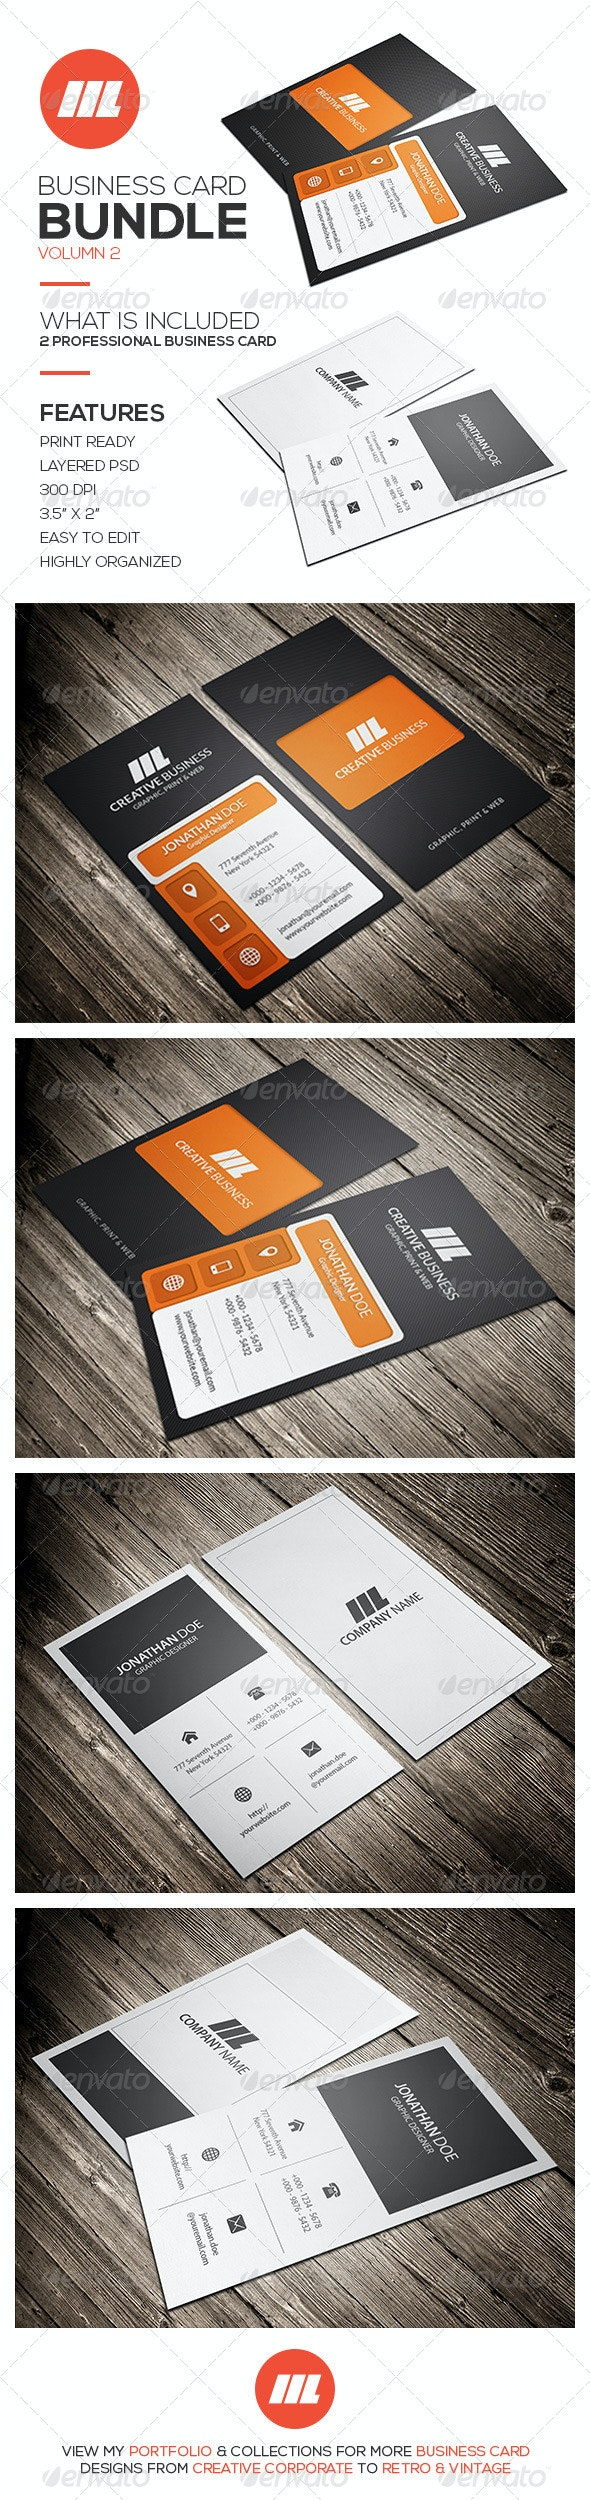 Business Card Bundle Vol 2 - Creative Business Cards